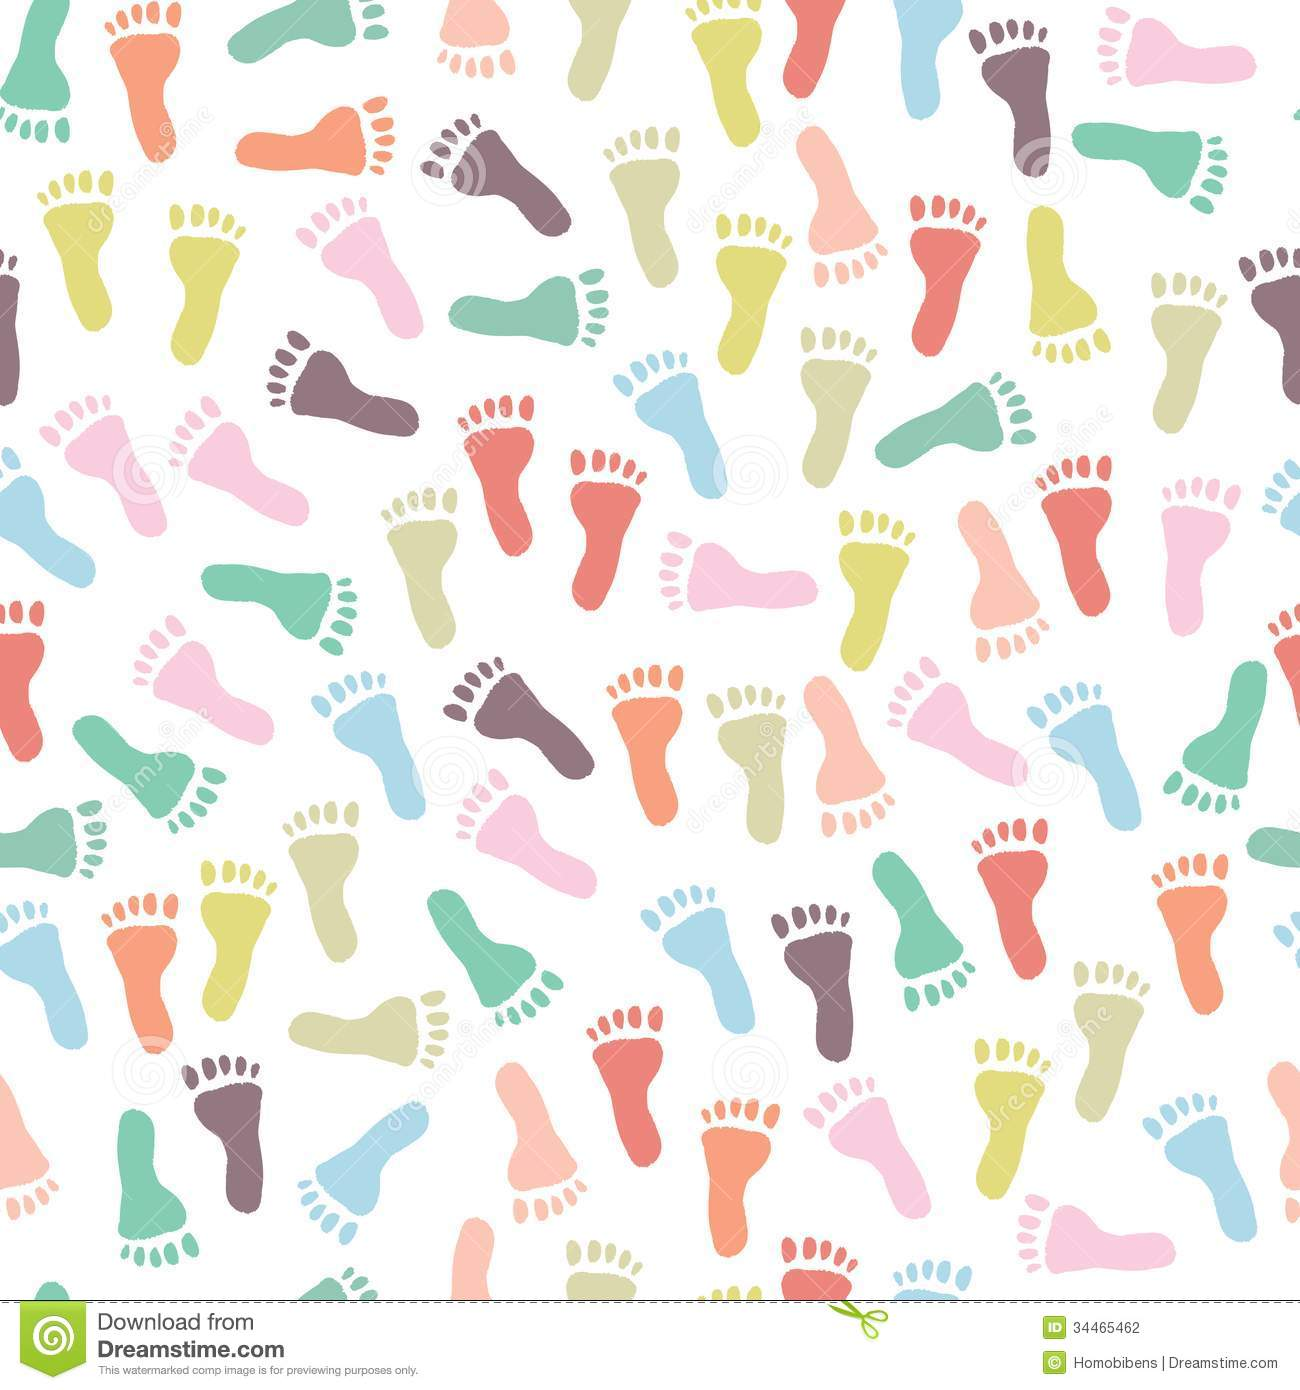 Displaying Images For Pink Baby Feet Wallpaper 1300x1390